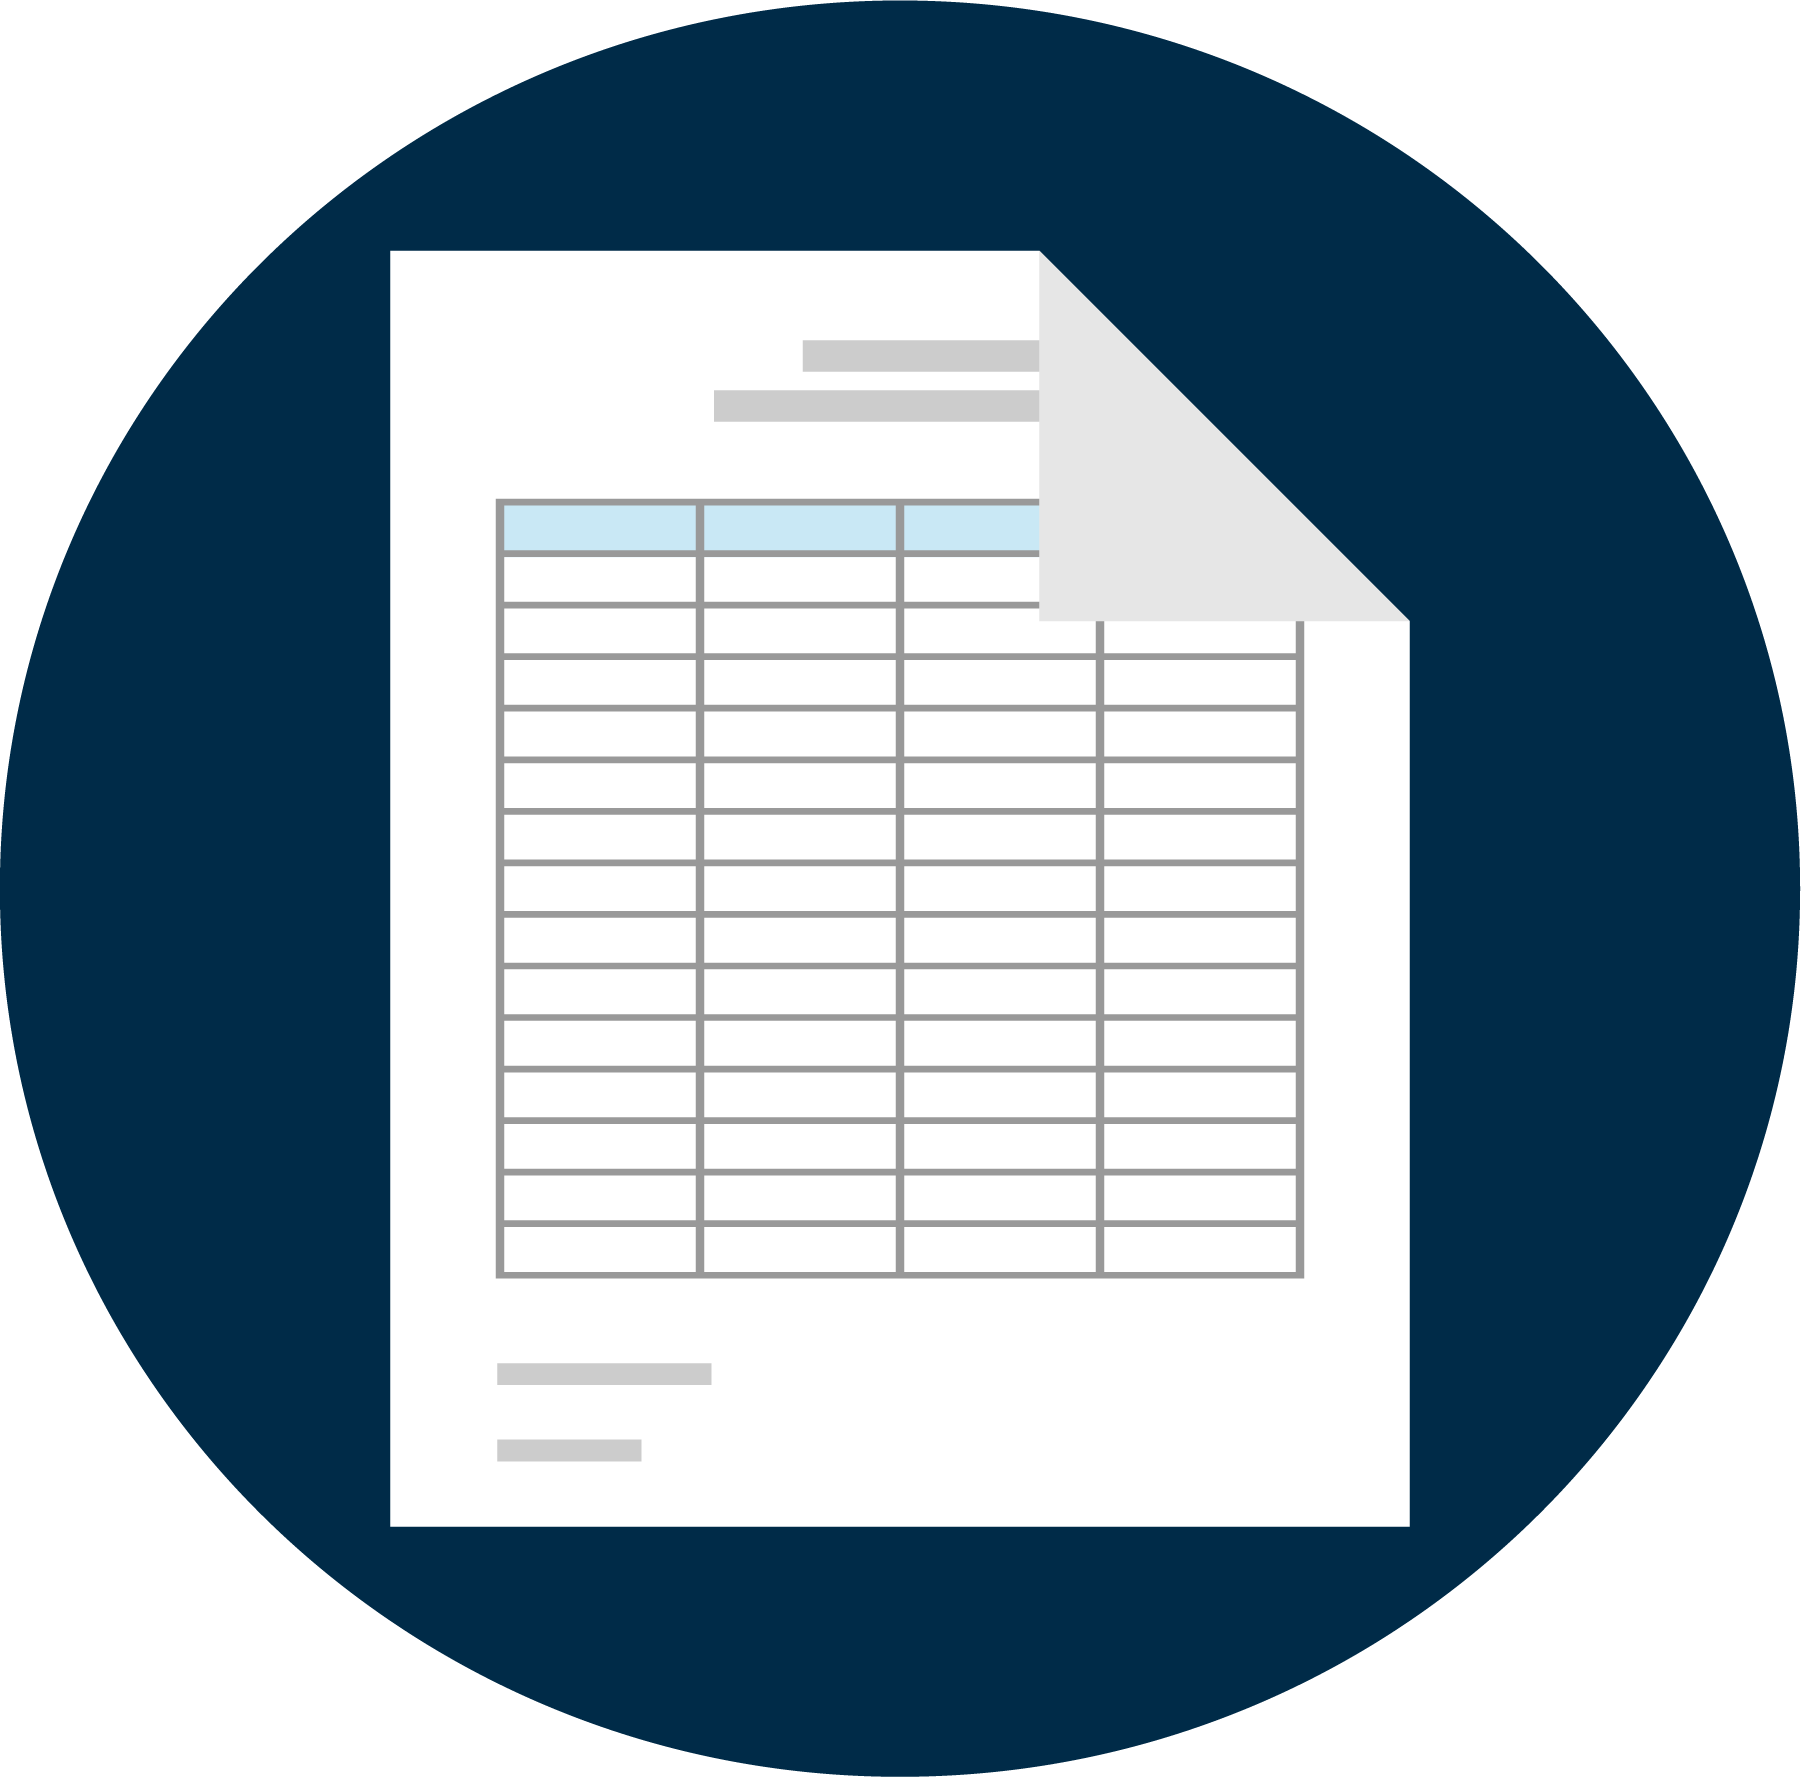 Spreadsheet Resource Icon with Background@3x